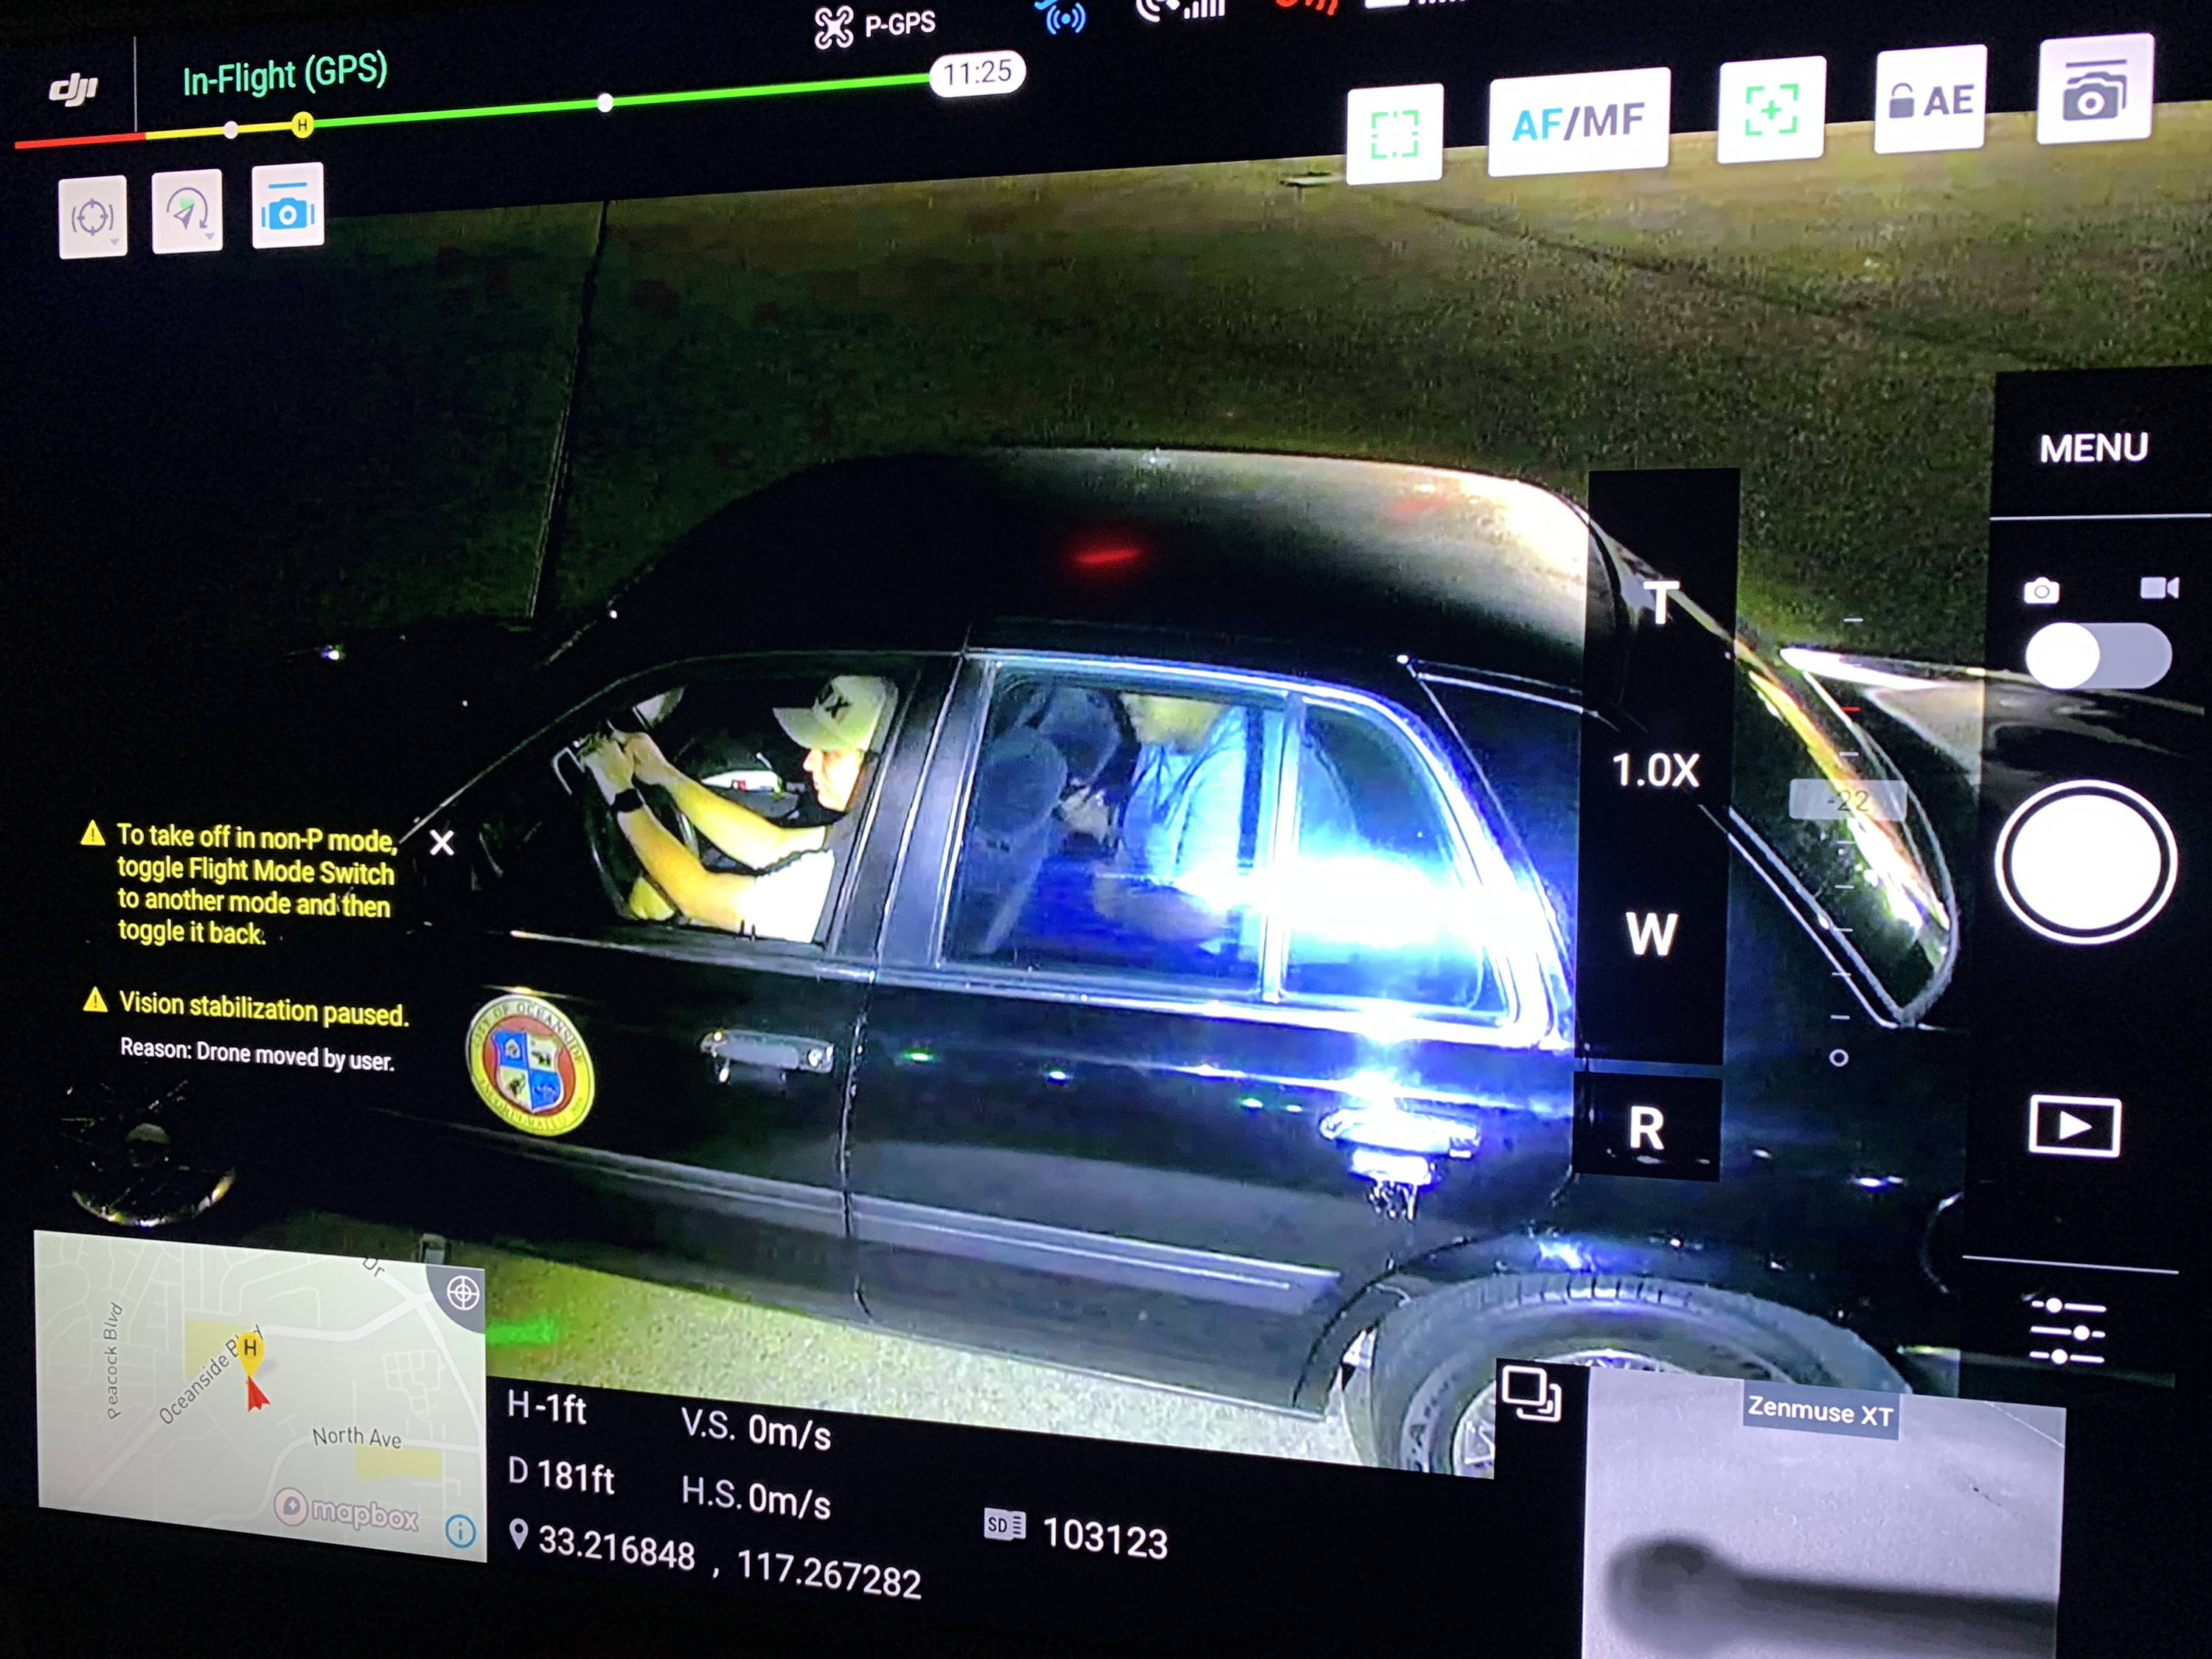 Footage from the Matrice 200 drone showing the FoxFury Rugo lights illuminating the inside of the vehicle.